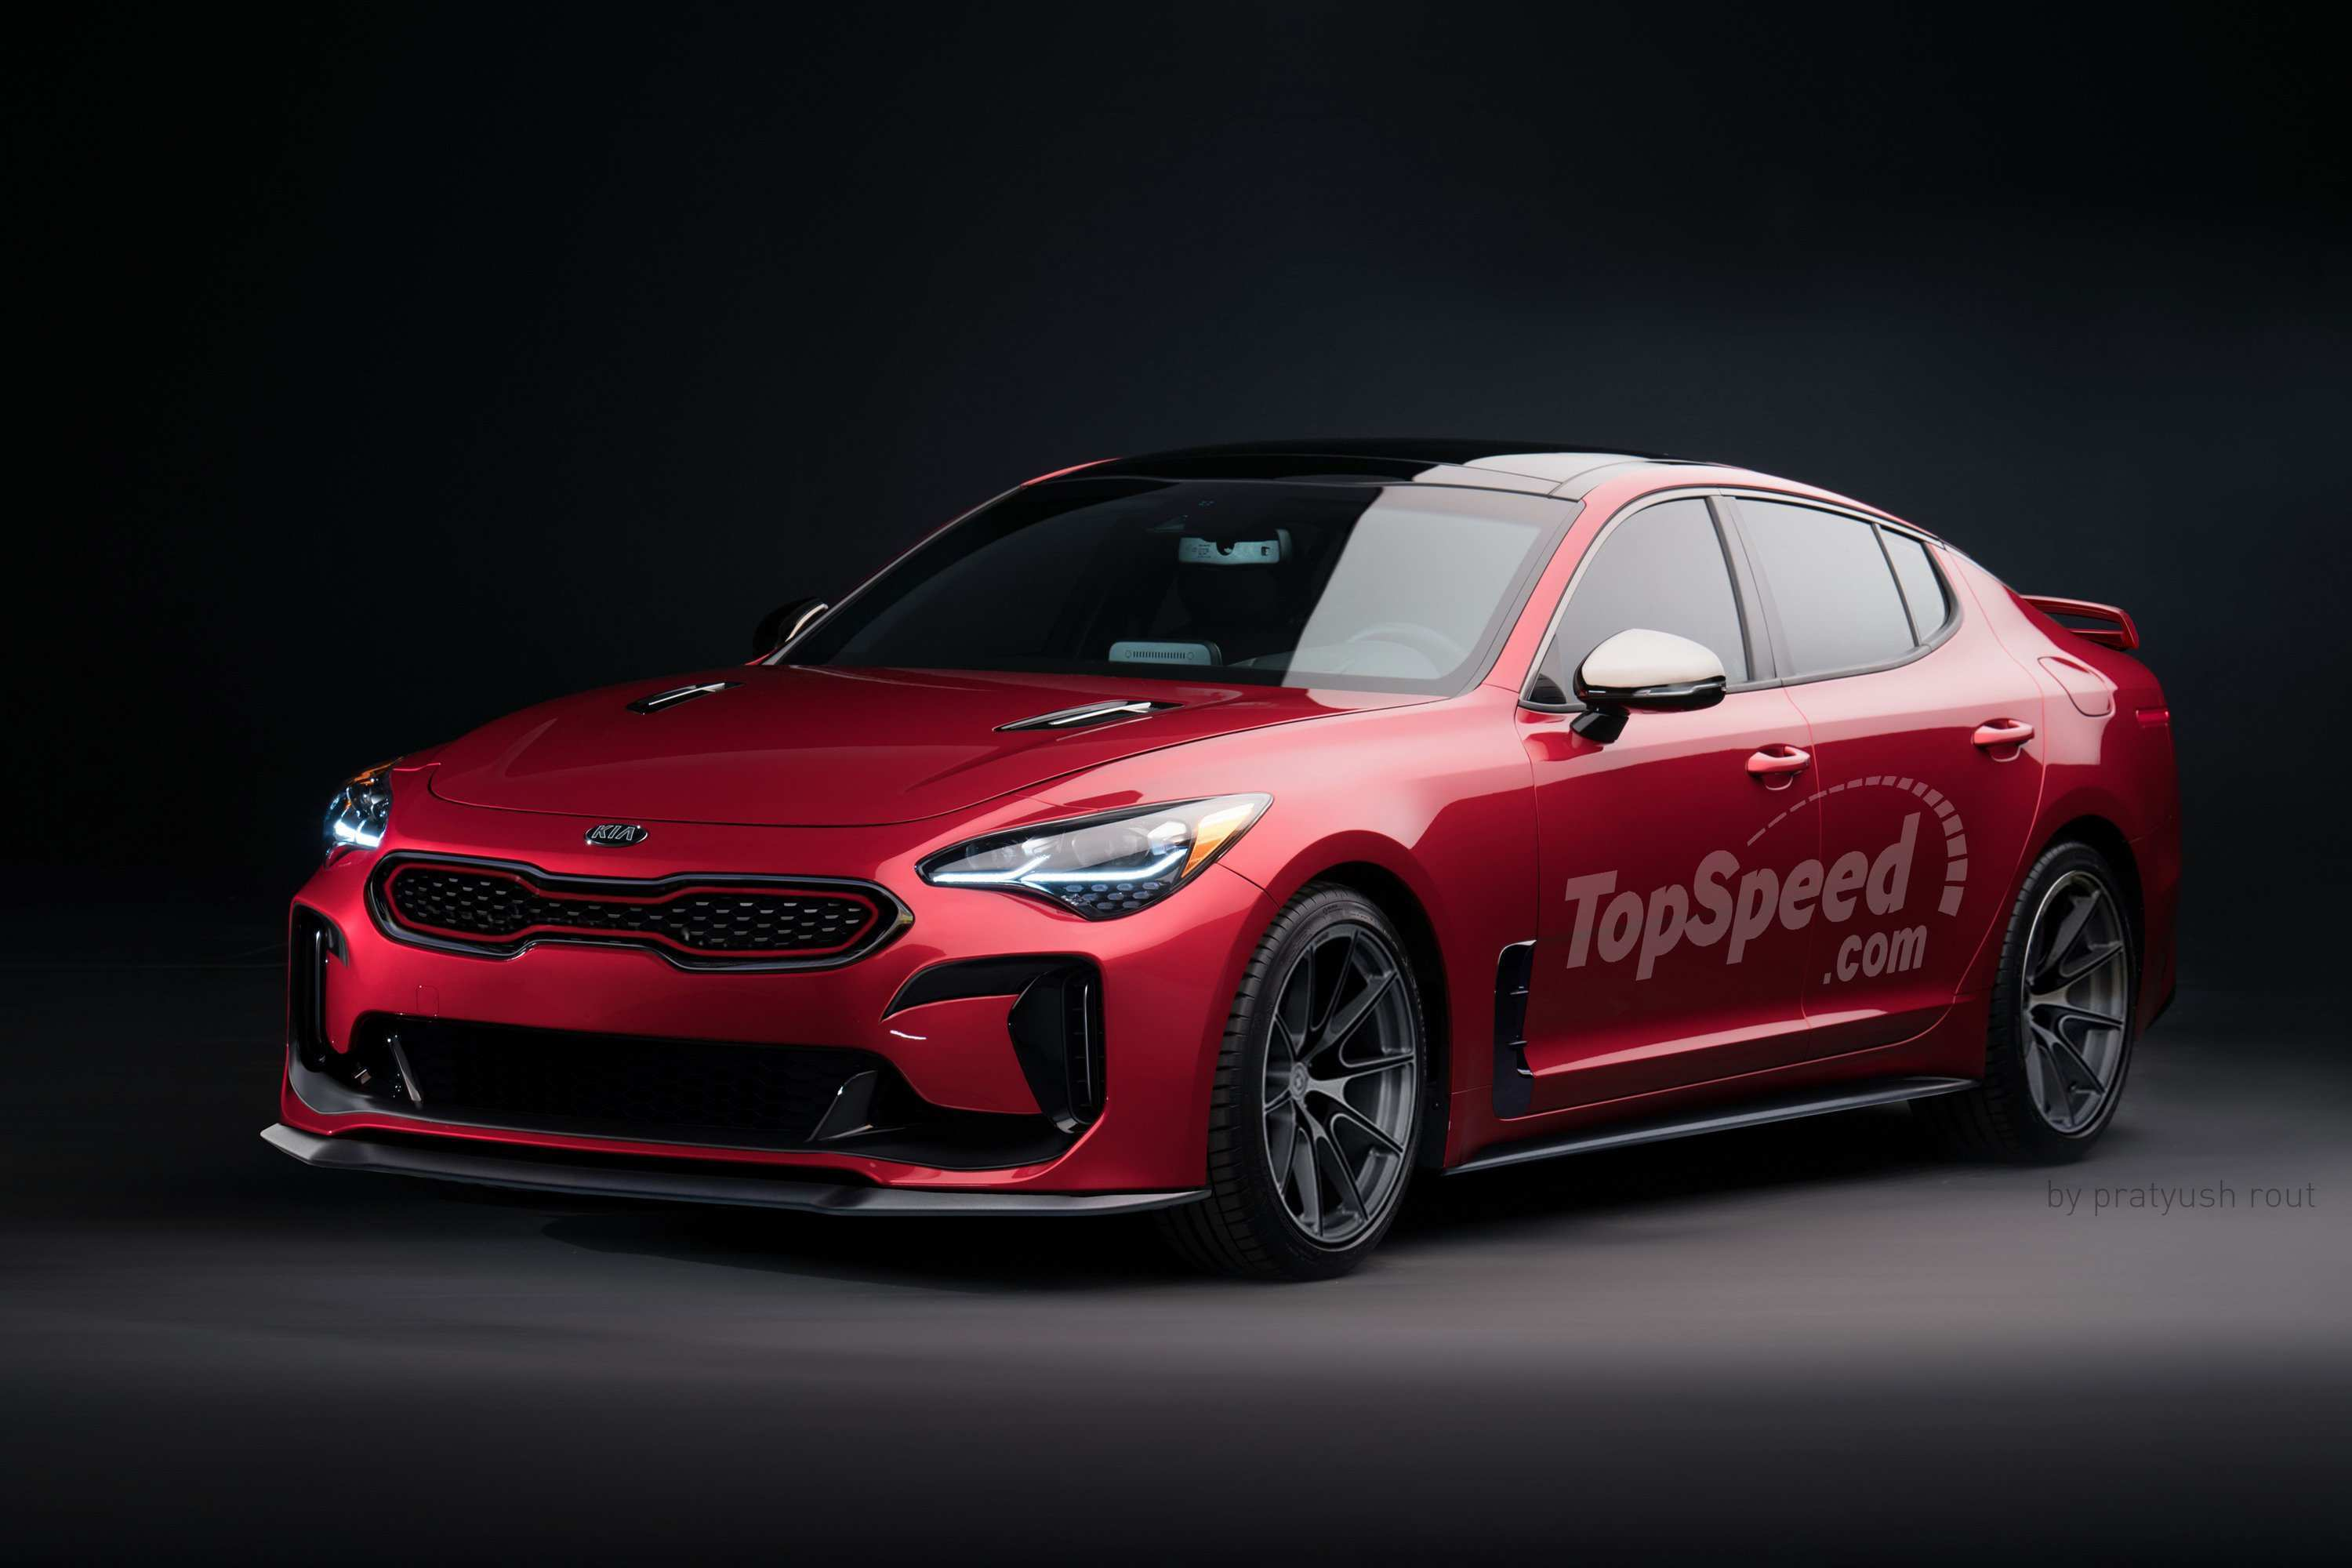 45 New 2019 Kia Stinger Concept by 2019 Kia Stinger